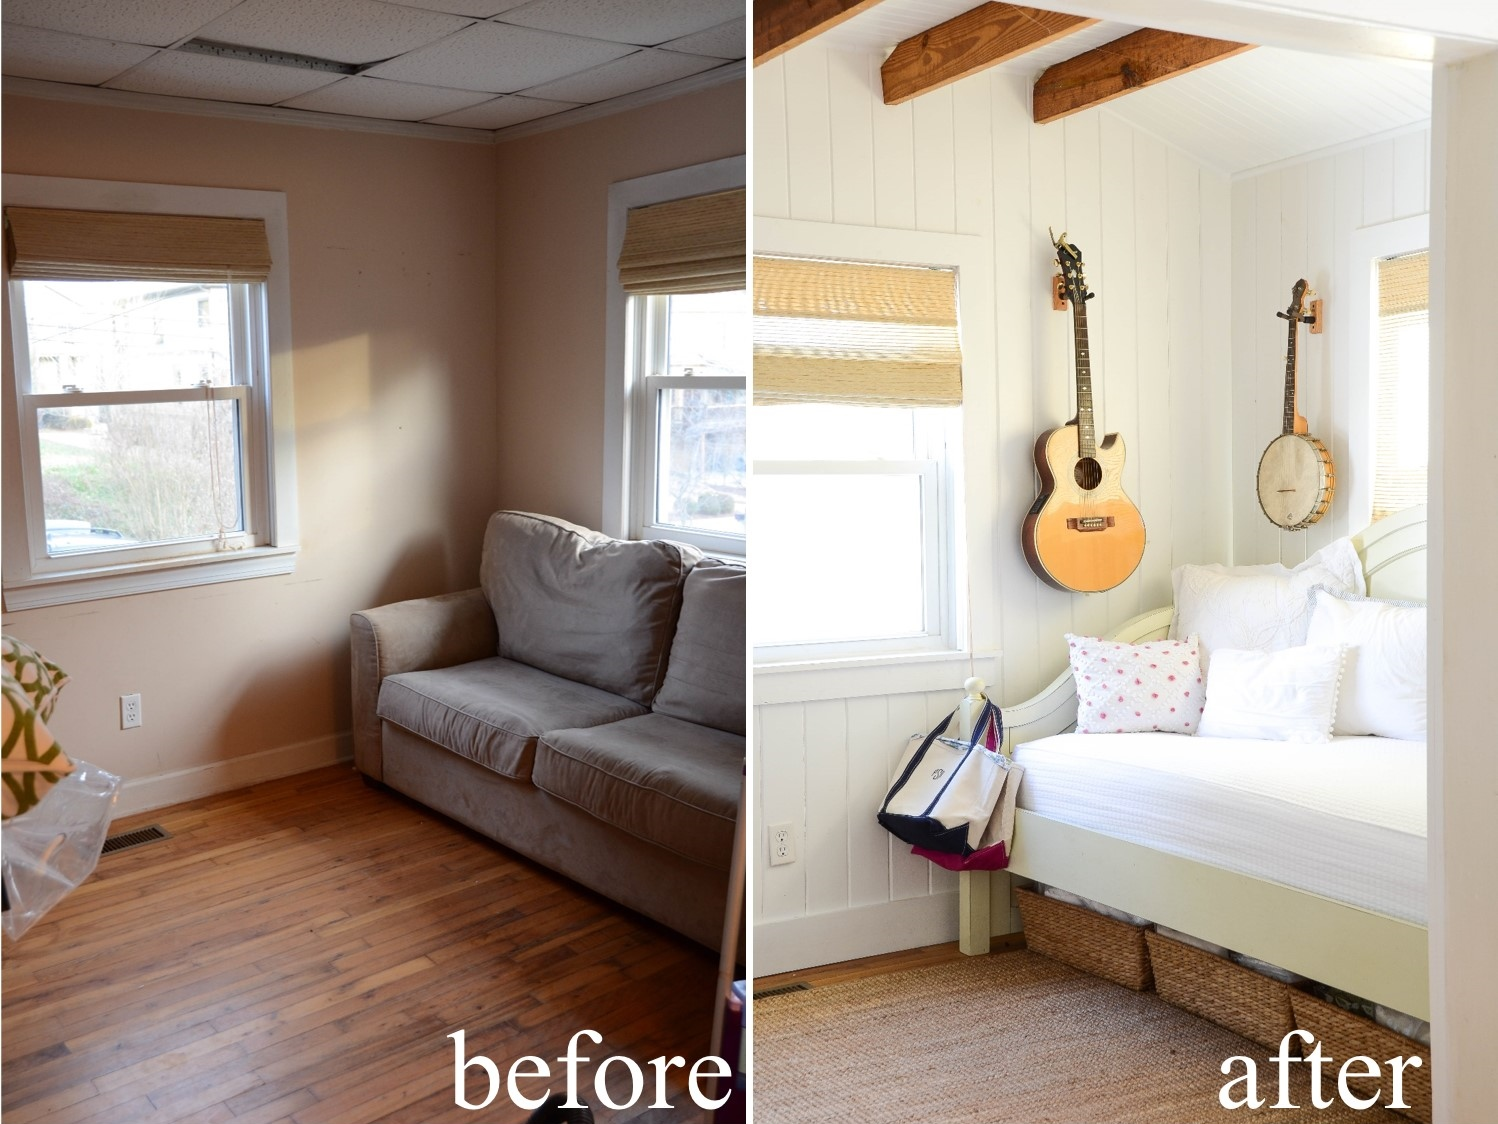 Iron twine before after small living space - Small living room before and after ...